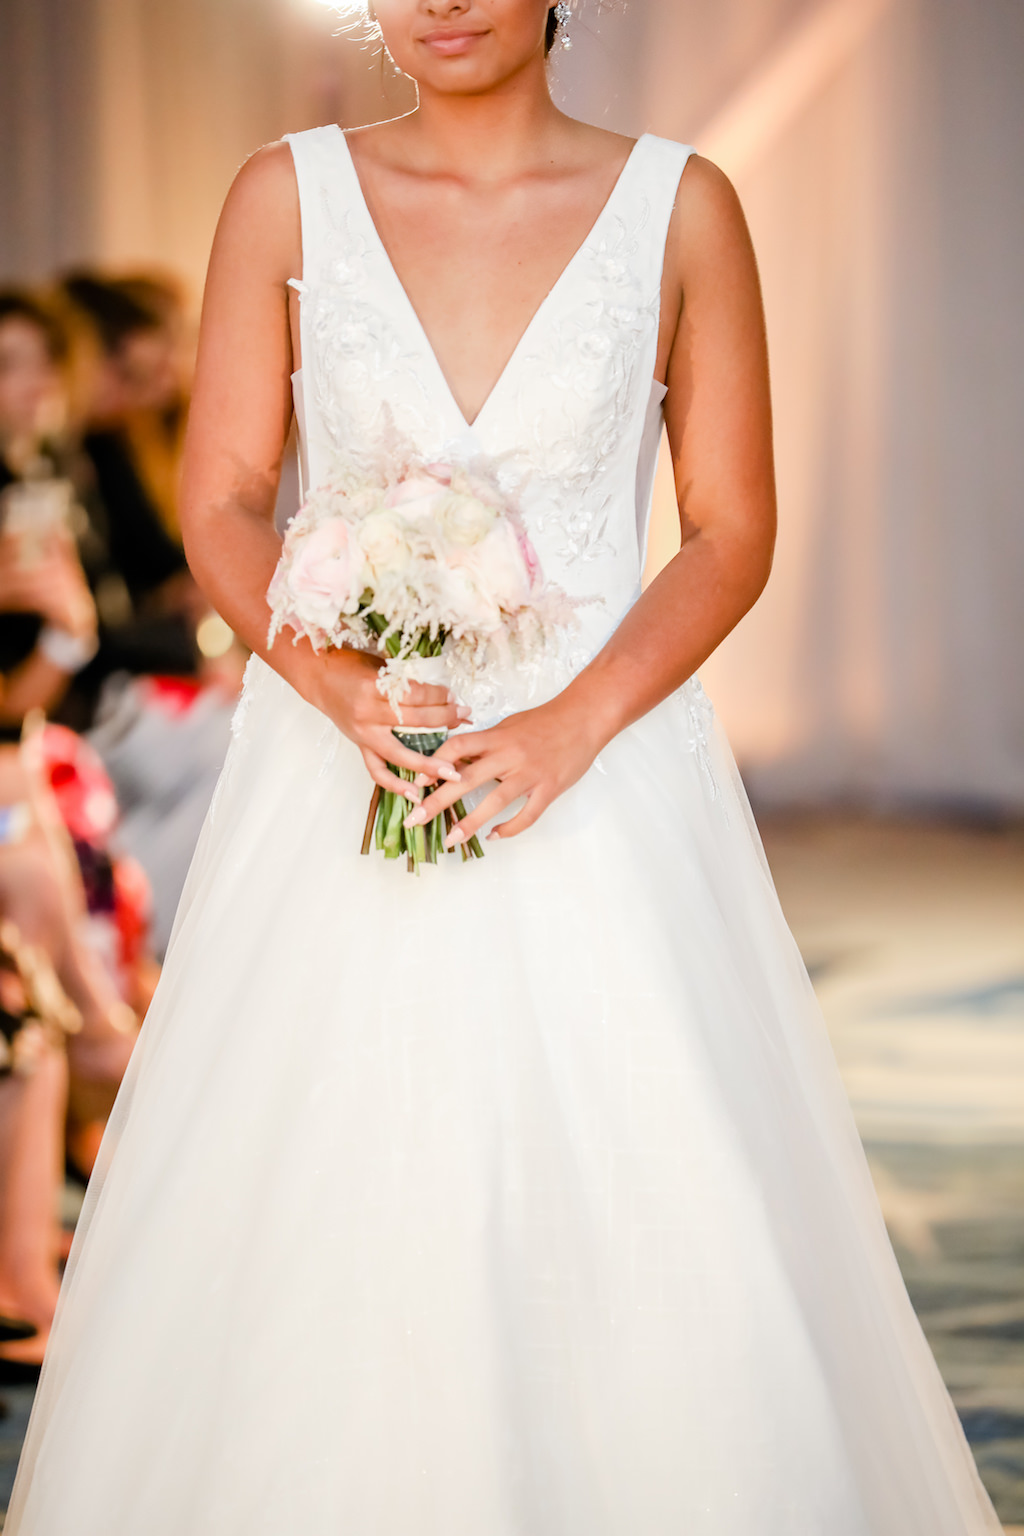 Elegant, White, Low Neck, A-Line Wedding Dress, Carrying Ivory and Blush Pink Floral Bouquet   Designer Matthew Christopher   Truly Forever Bridal   The Ritz Carlton Sarasota   Planner NK Weddings